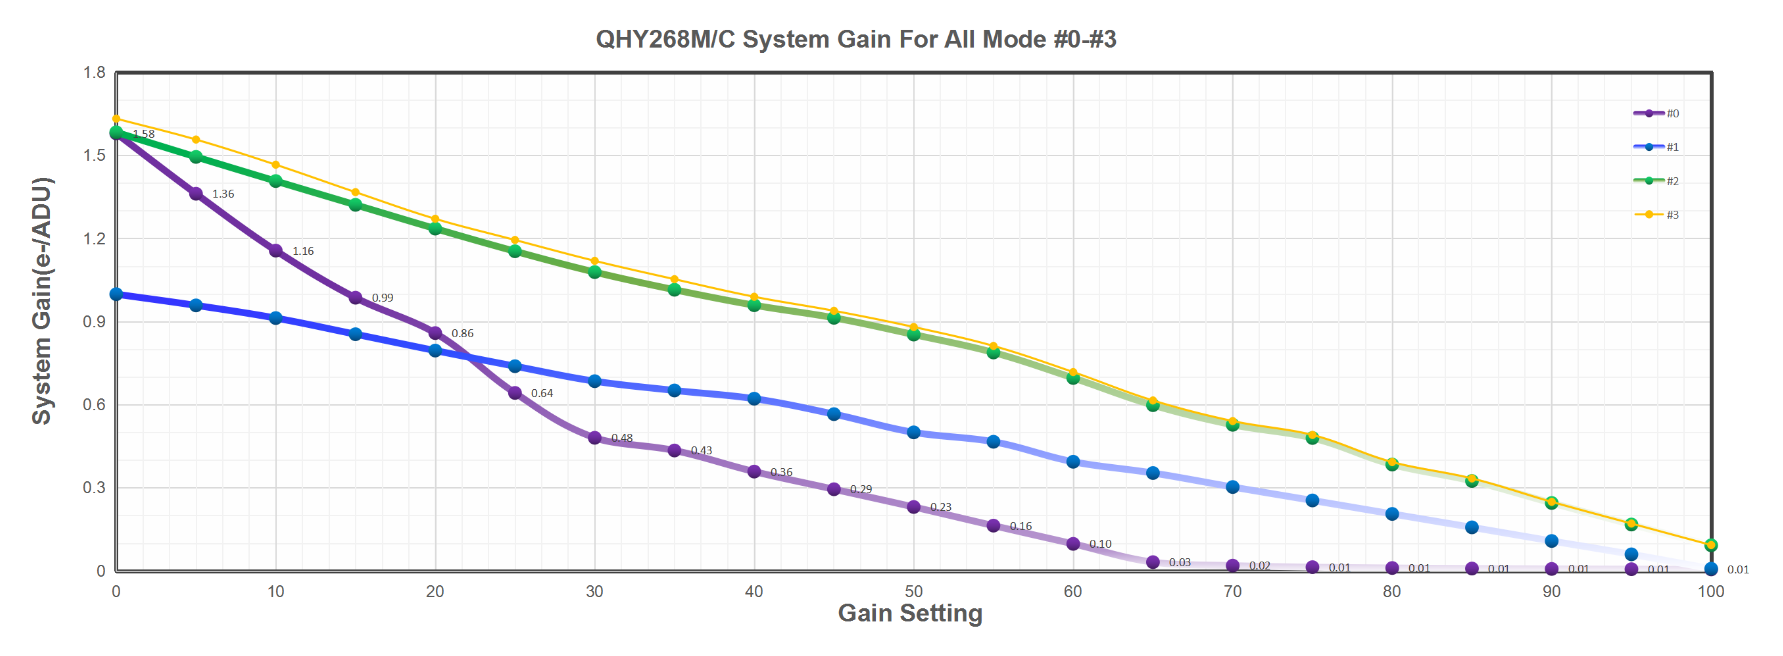 QHY268M/C System Gain For All Mode